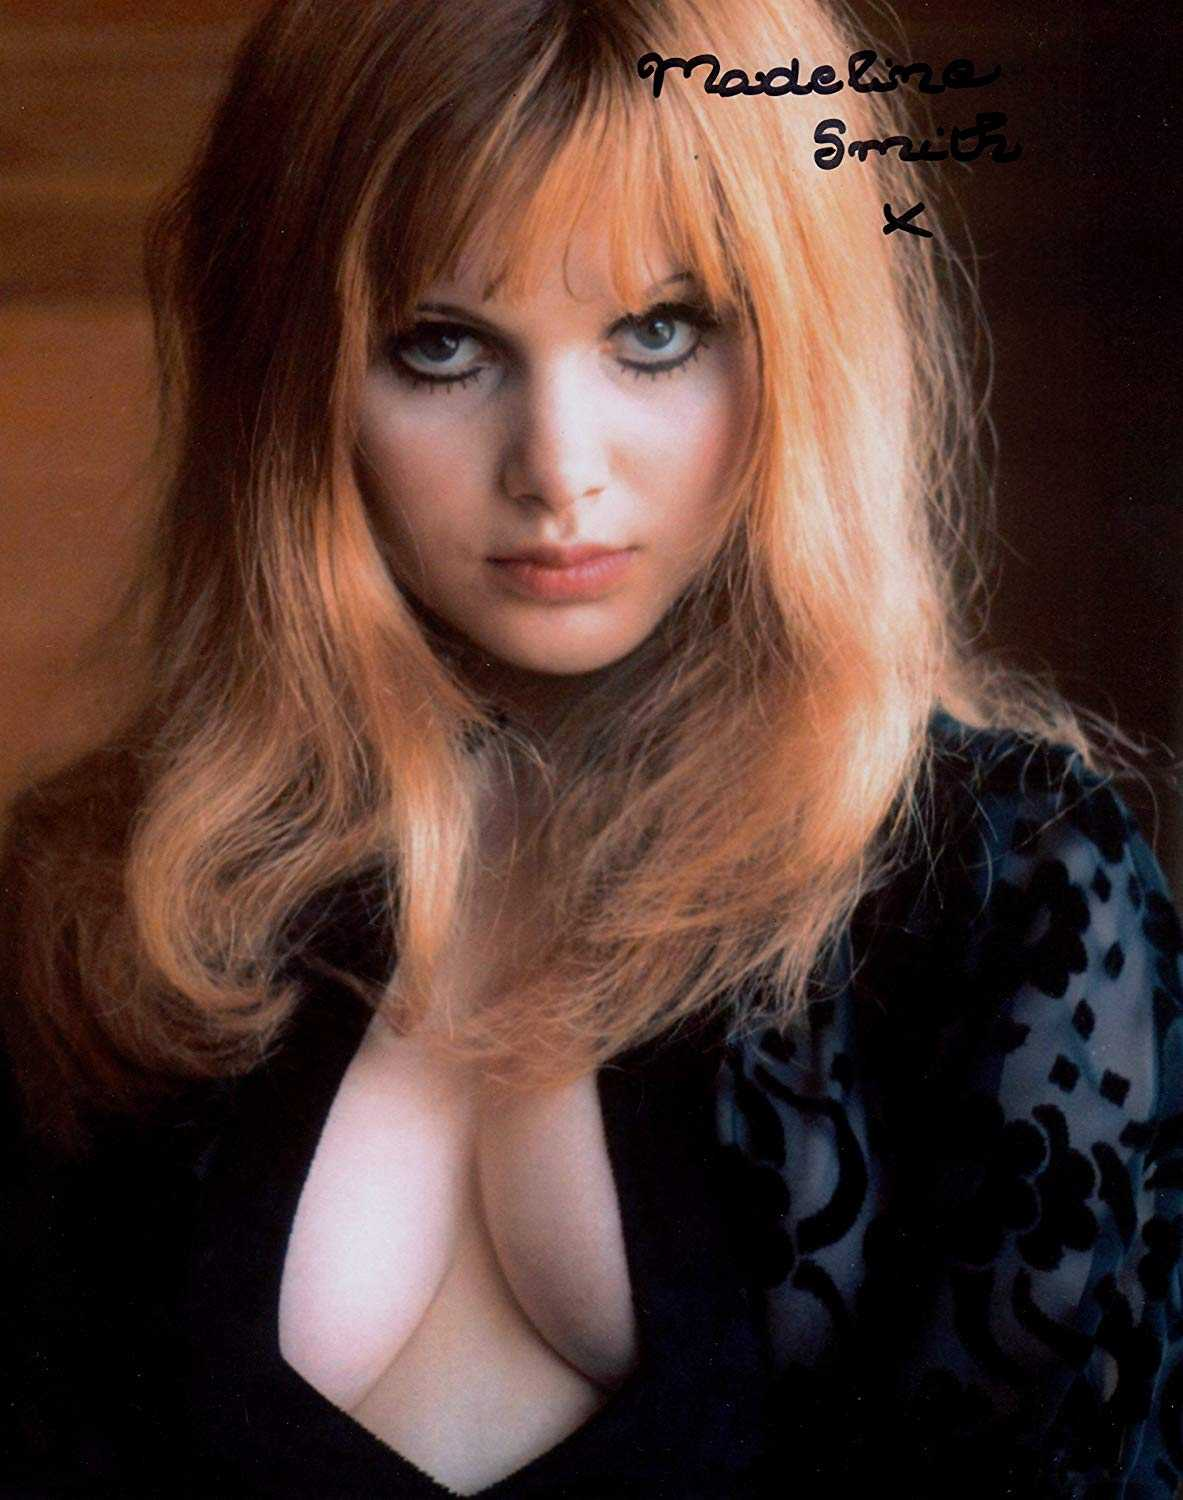 Madeline Smith hot cleavage